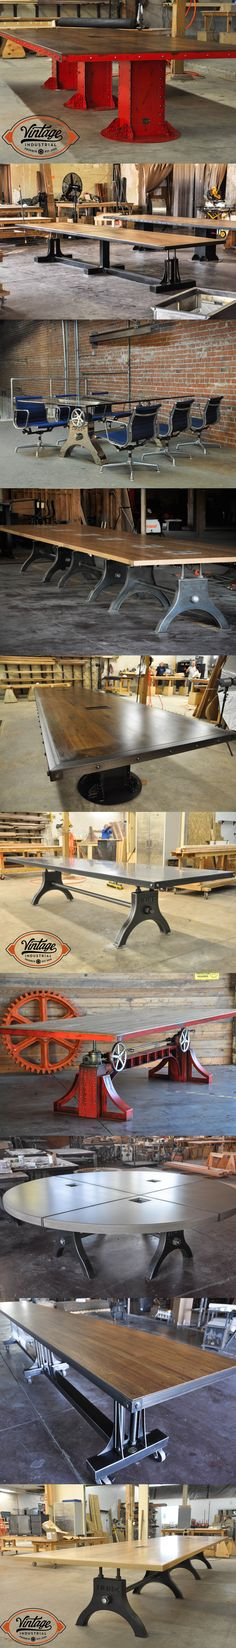 Vintage Industrial offers several conference table options that are all customizable with size, finish, color, dataport, and top material. We build to order in Phoenix! These also make a great community table.